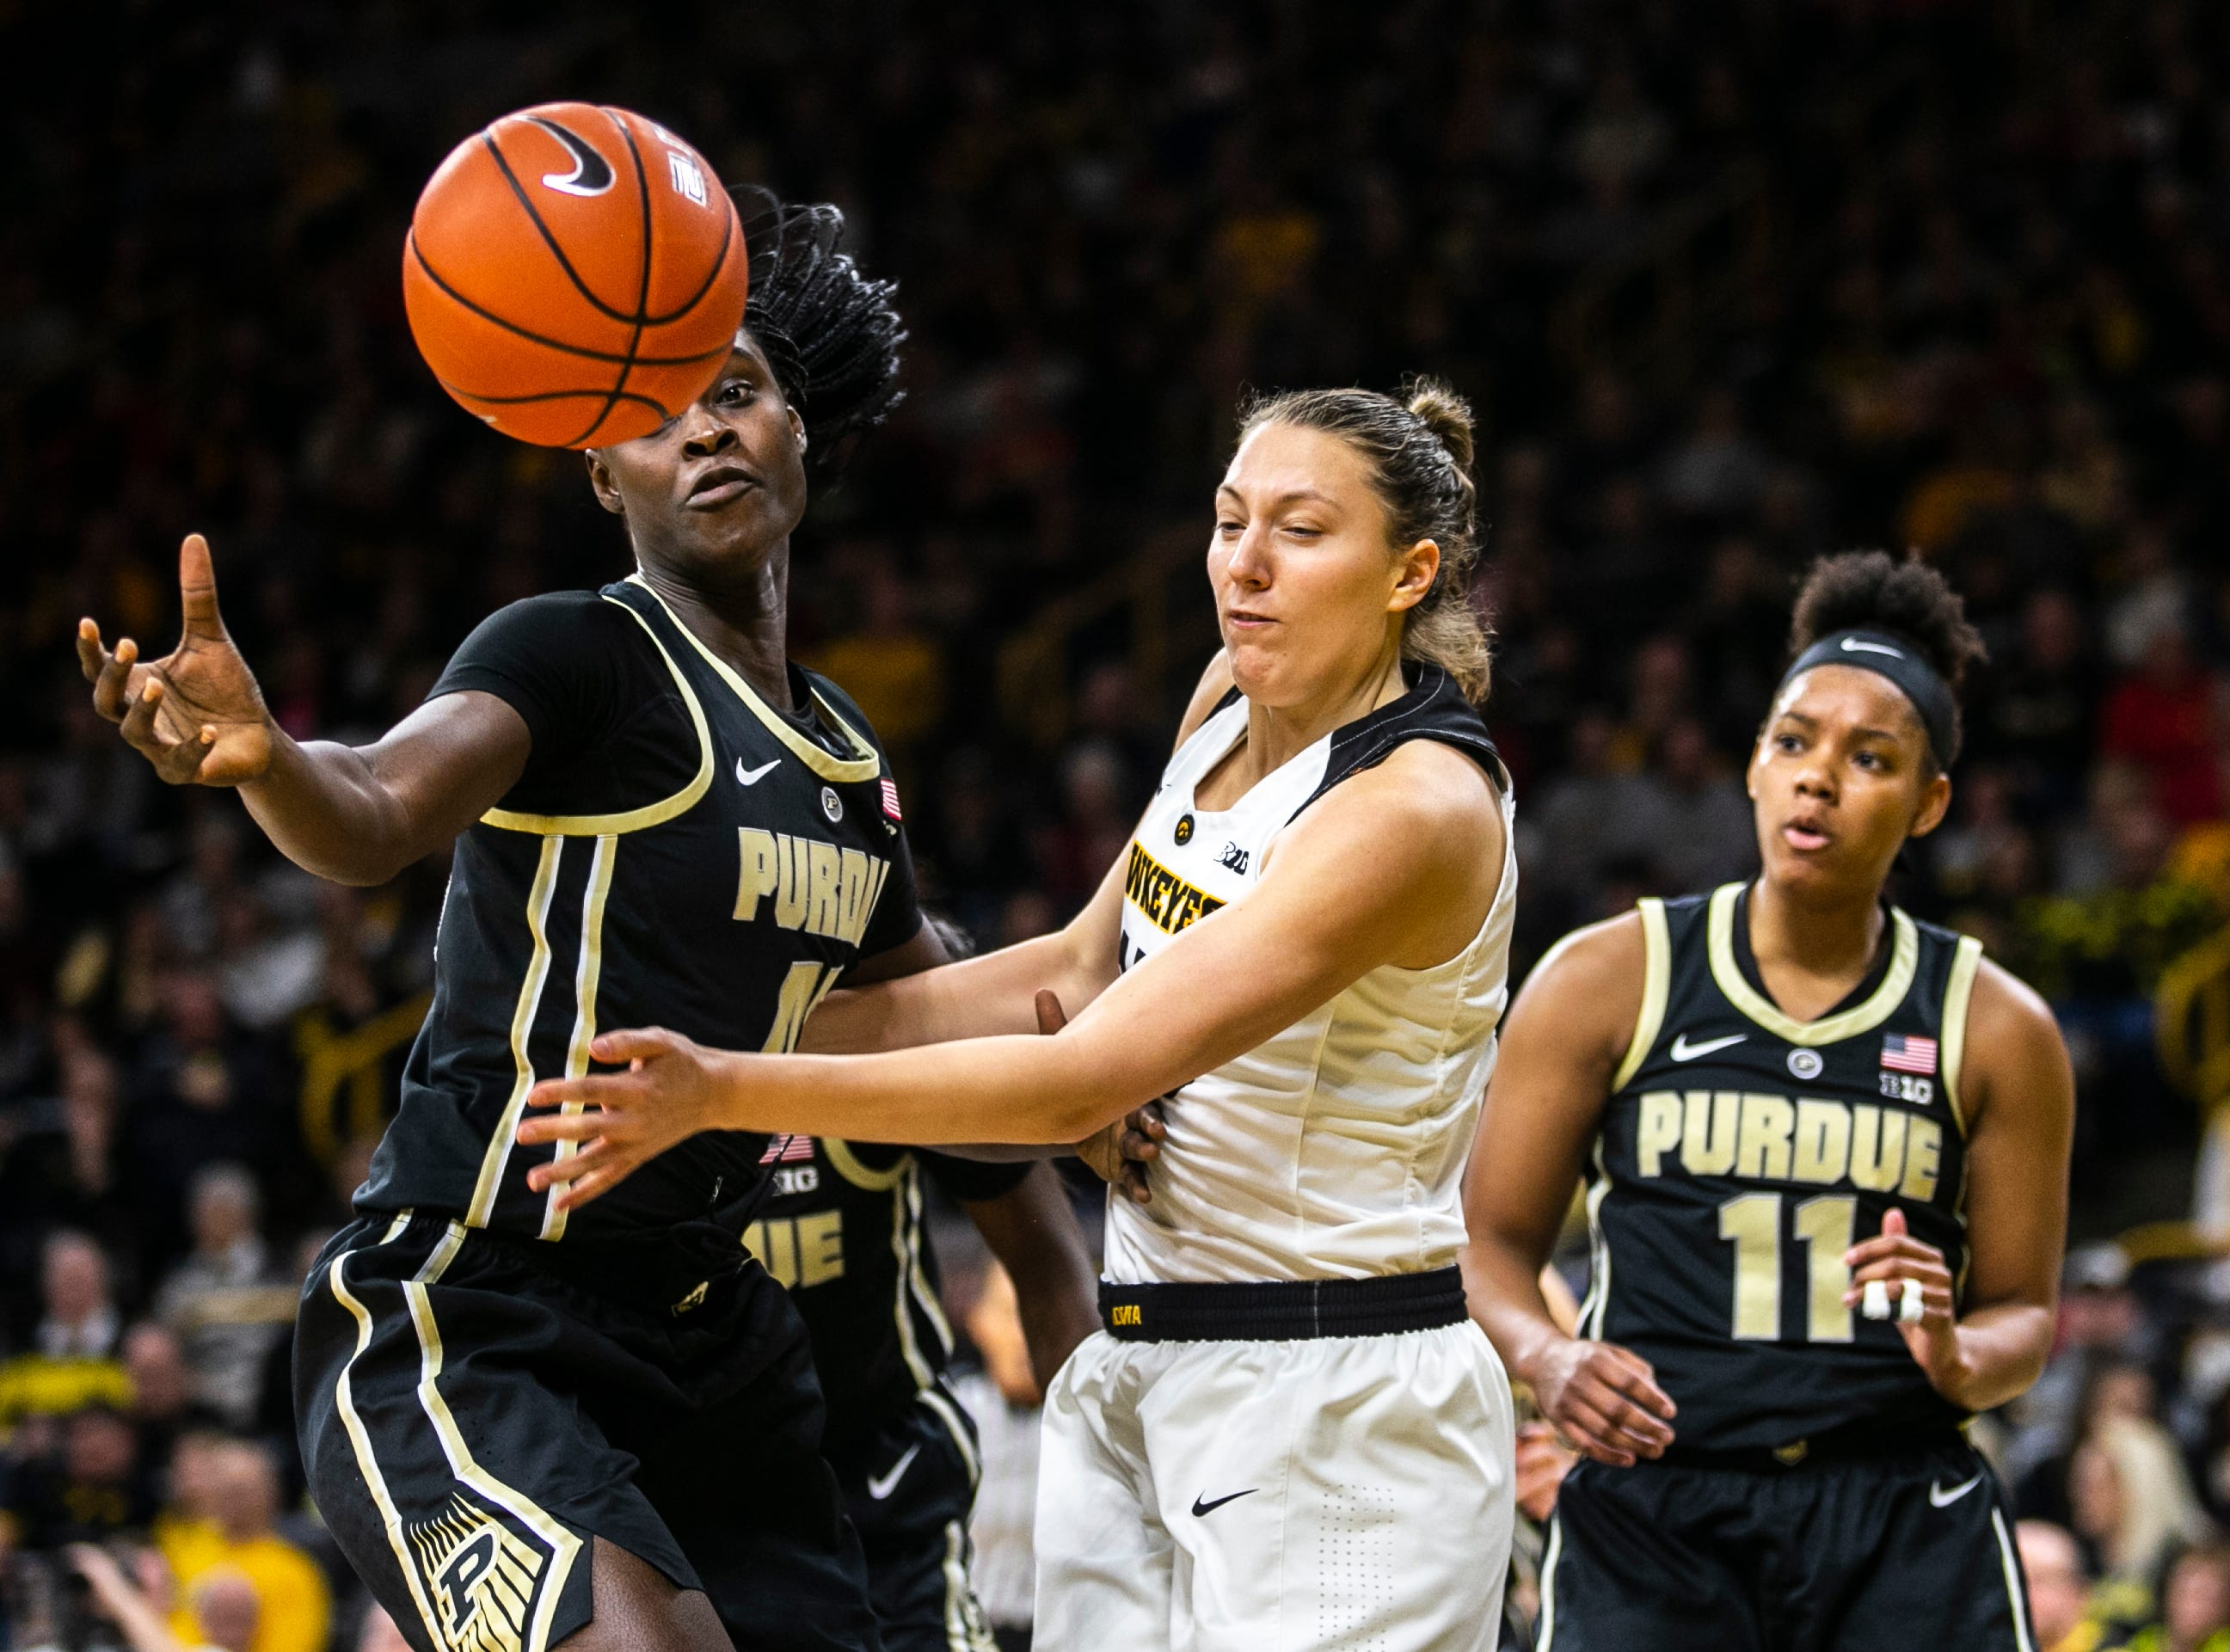 Iowa forward Amanda Ollinger, center, chases down a loose ball against Purdue center Fatou Diagne during a NCAA Big Ten Conference women's basketball game on Sunday, Jan. 27, 2019, at Carver-Hawkeye Arena in Iowa City, Iowa.